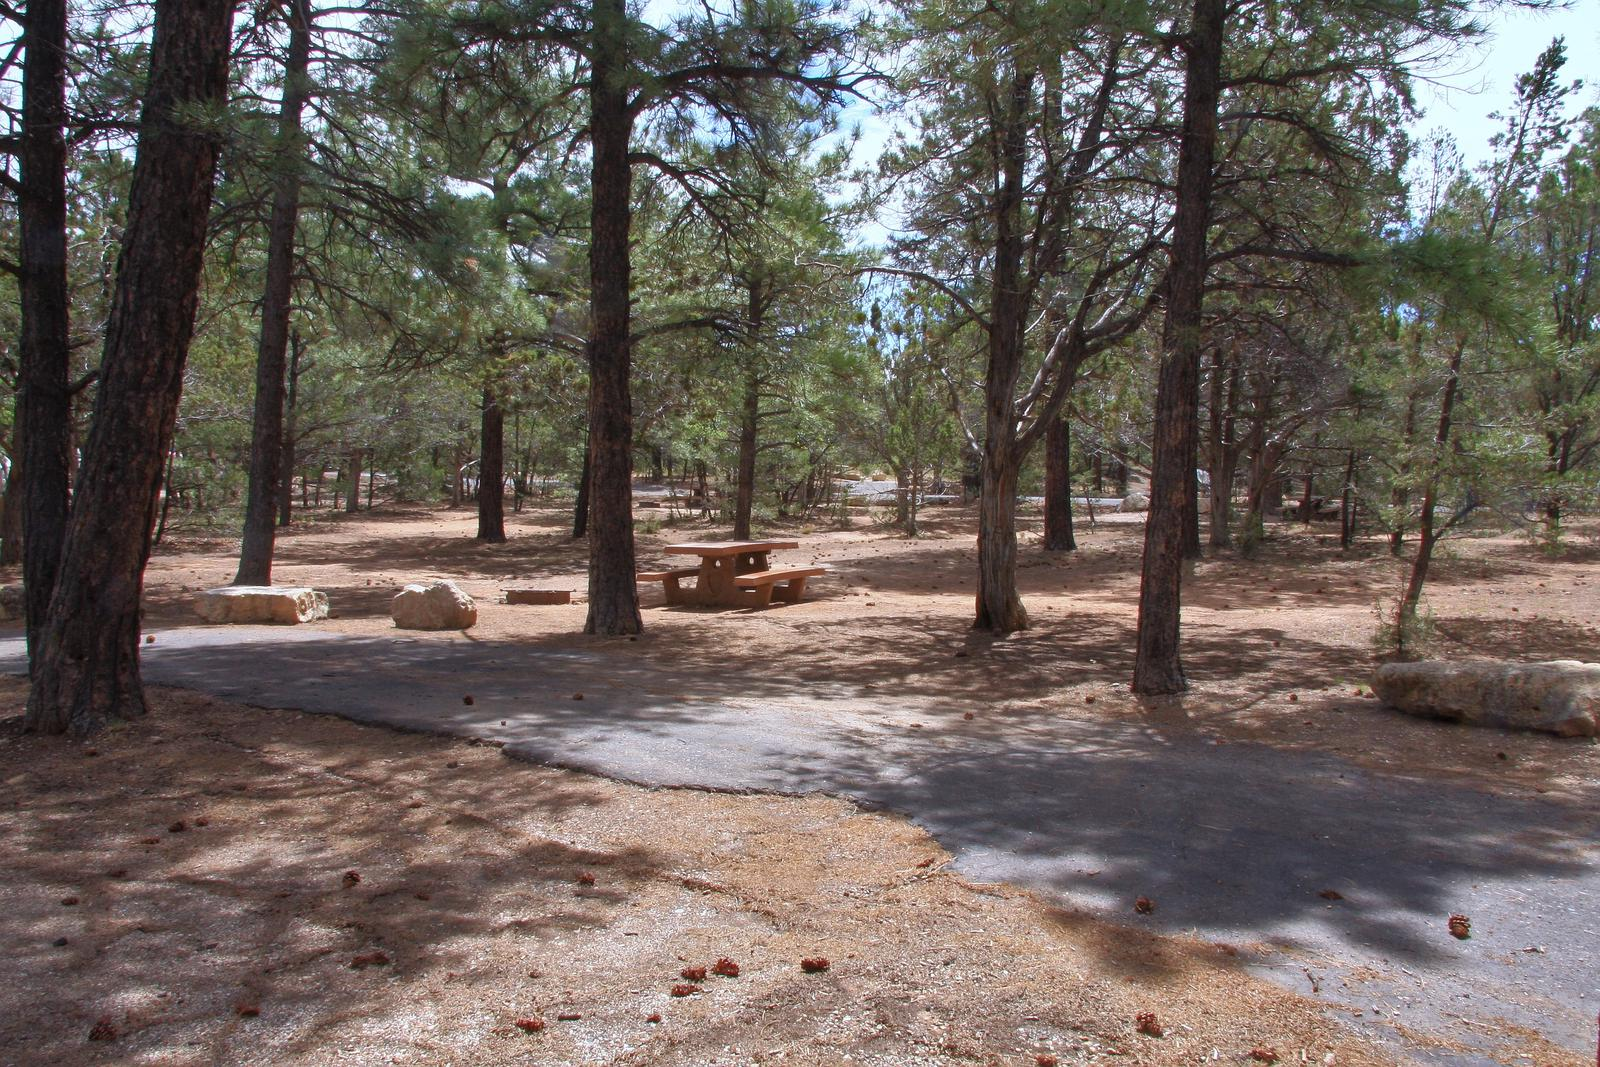 Picnic table, fire pit, and parking spot, Mather CampgroundPicnic table, fire pit, and parking spot for Fir Loop 66, Mather Campground